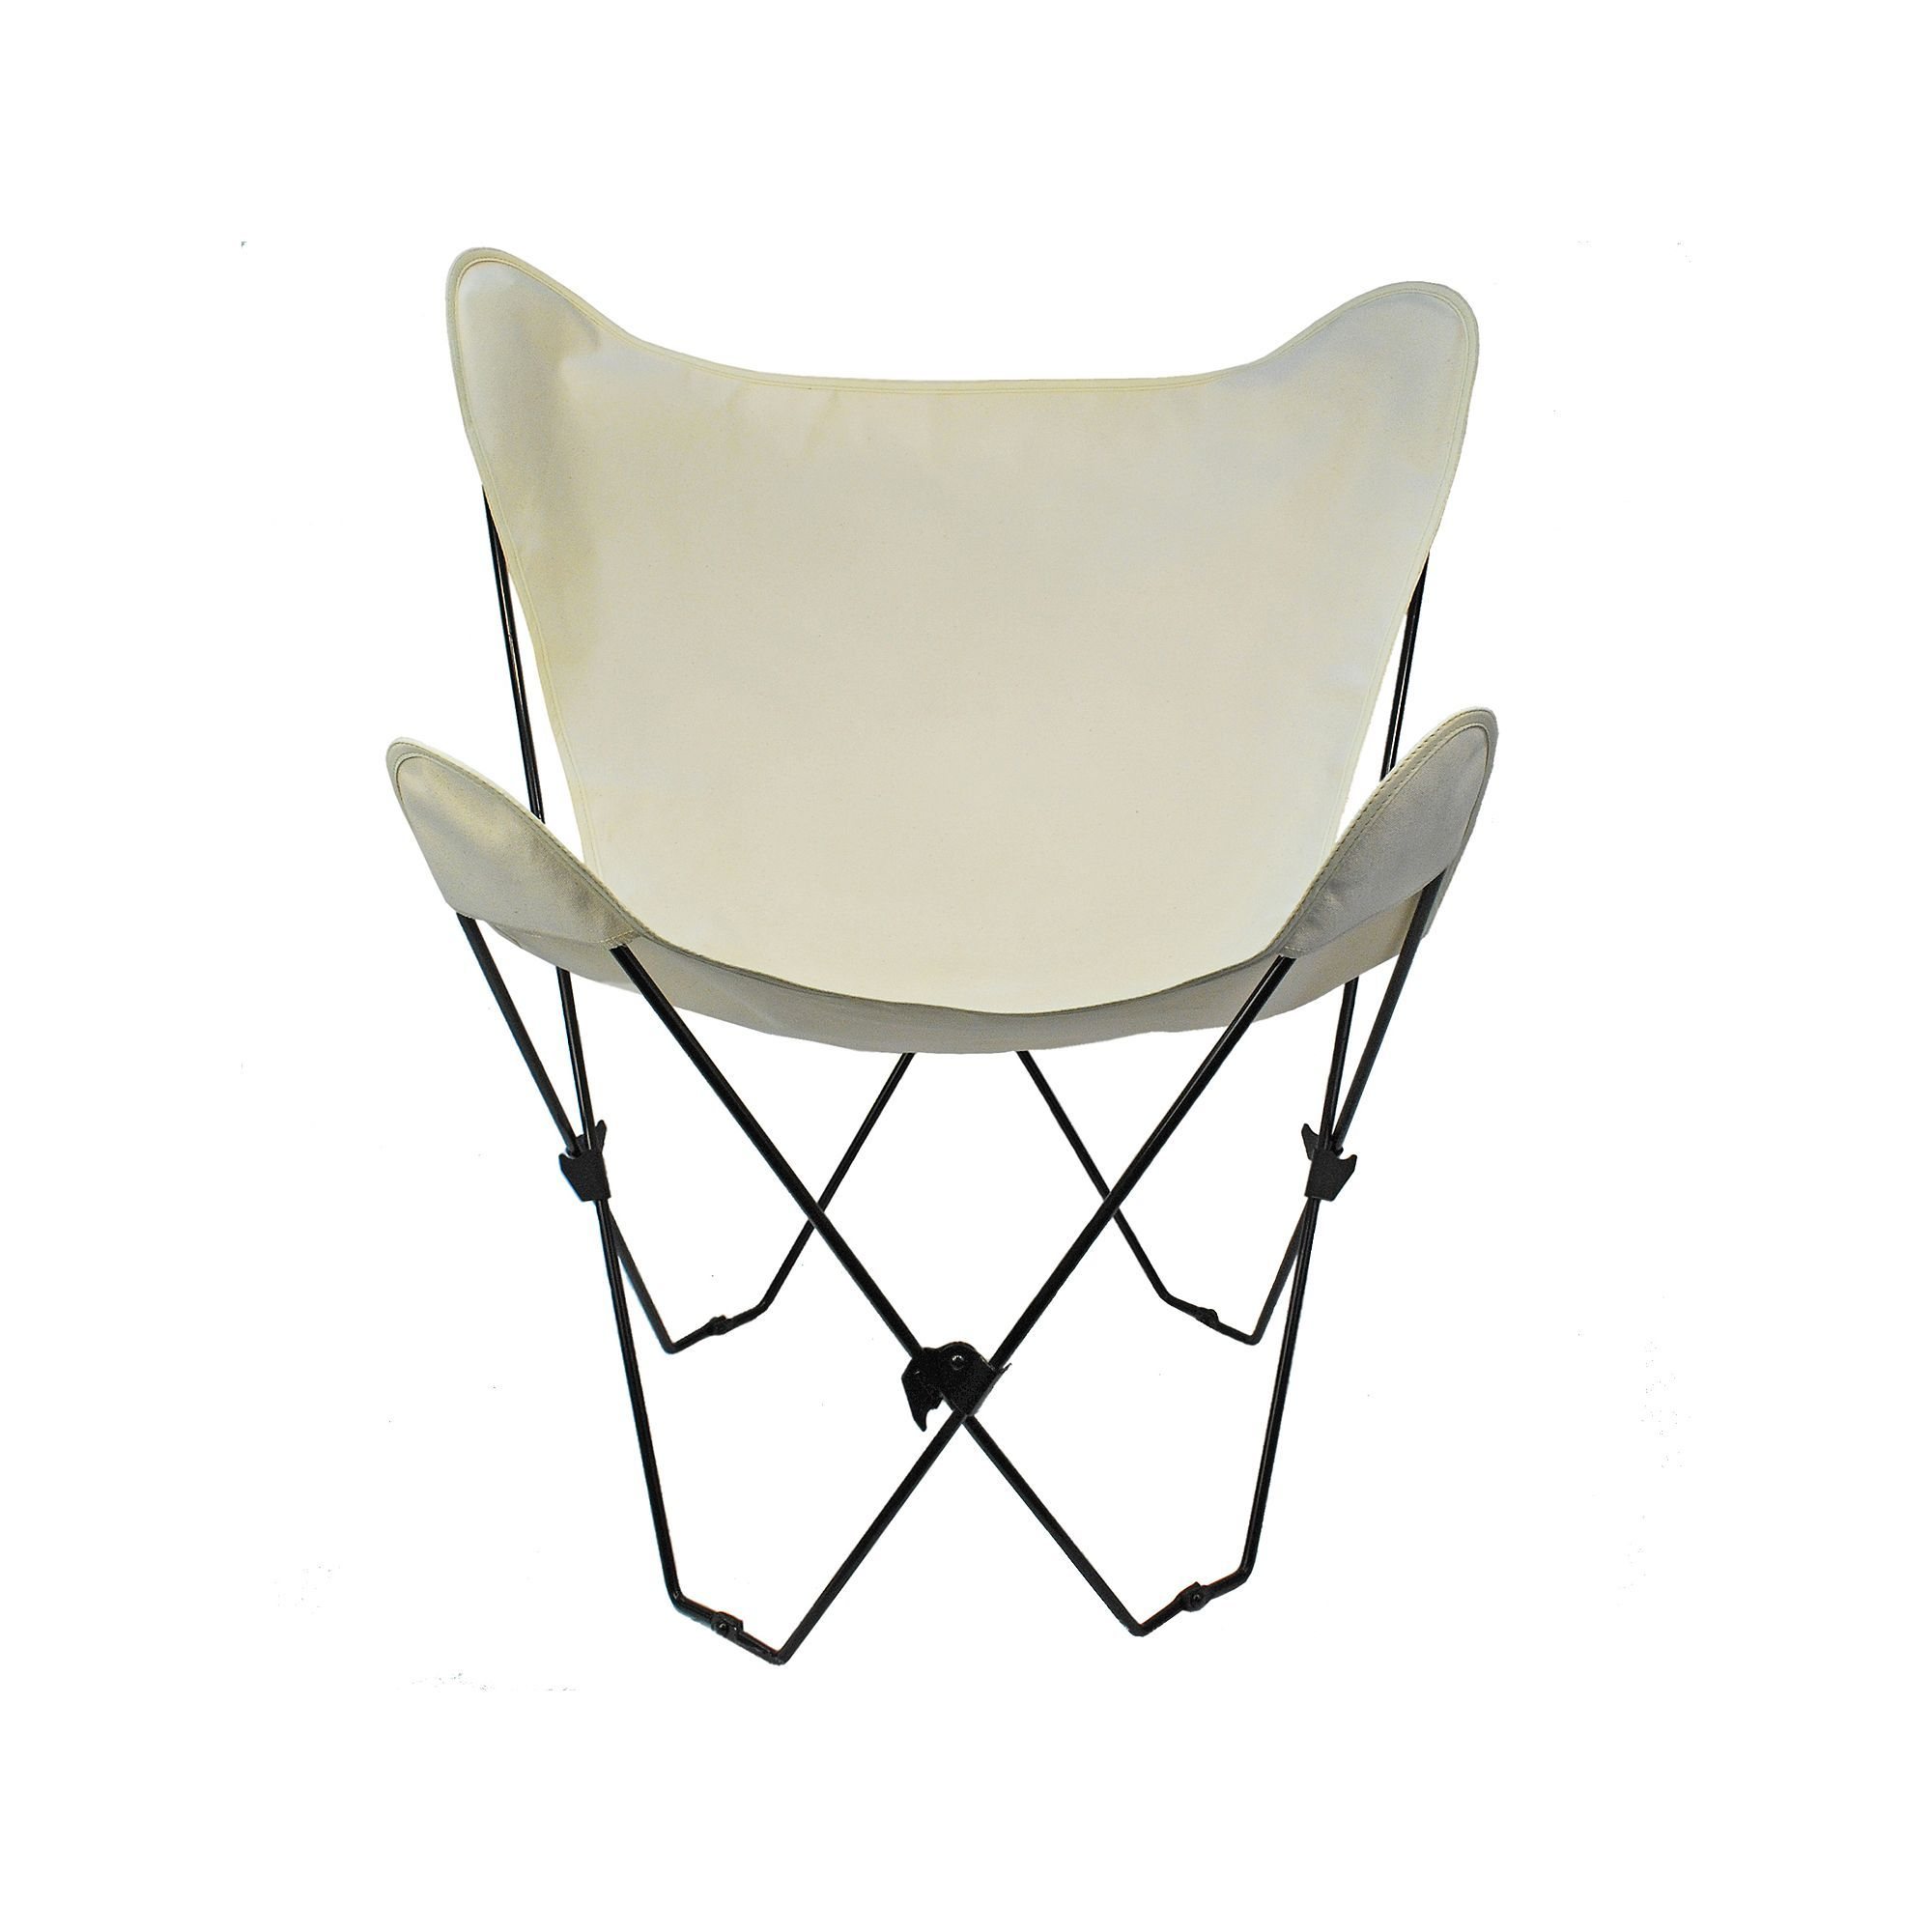 Swell Algoma Duck Cotton Butterfly Chair Products Butterfly Pabps2019 Chair Design Images Pabps2019Com